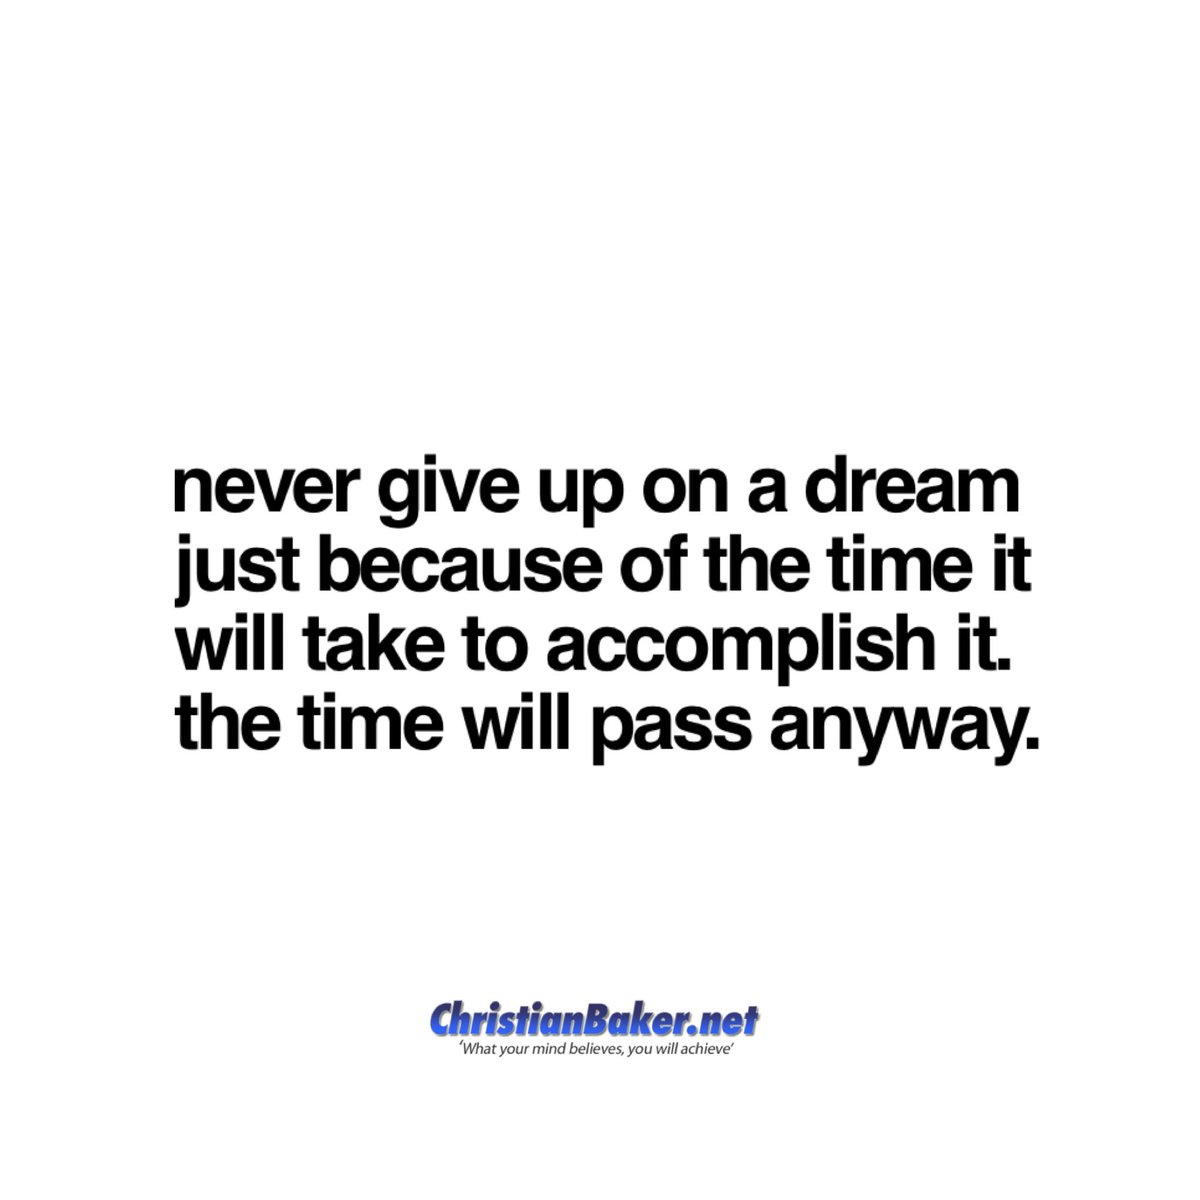 """""""Never give up on a dream just because of the time it will take to accomplish it. The time will pass anyway."""" Earl Nightingale   #MondayMotivation #thoughtoftheday #Makeithappen #followyourdreams #youcandoit #nevergiveup"""